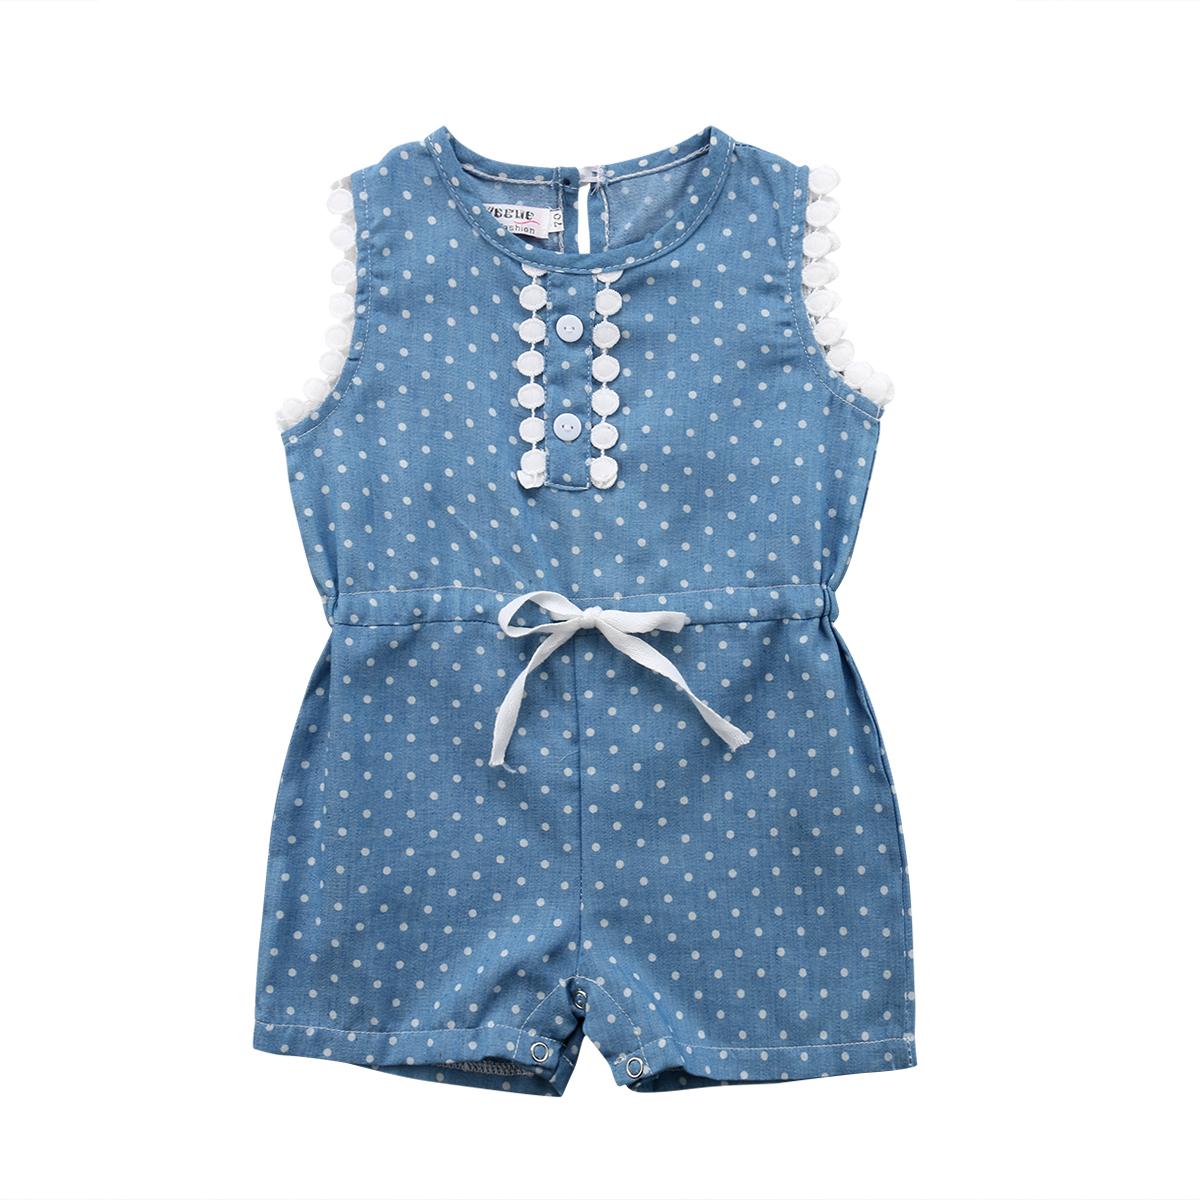 2018 Casual Newborn Toddler Baby Girl Denim Romper Jumpsuit Short Sleeve Cotton Romper Baby Clothes Outfit Clothes